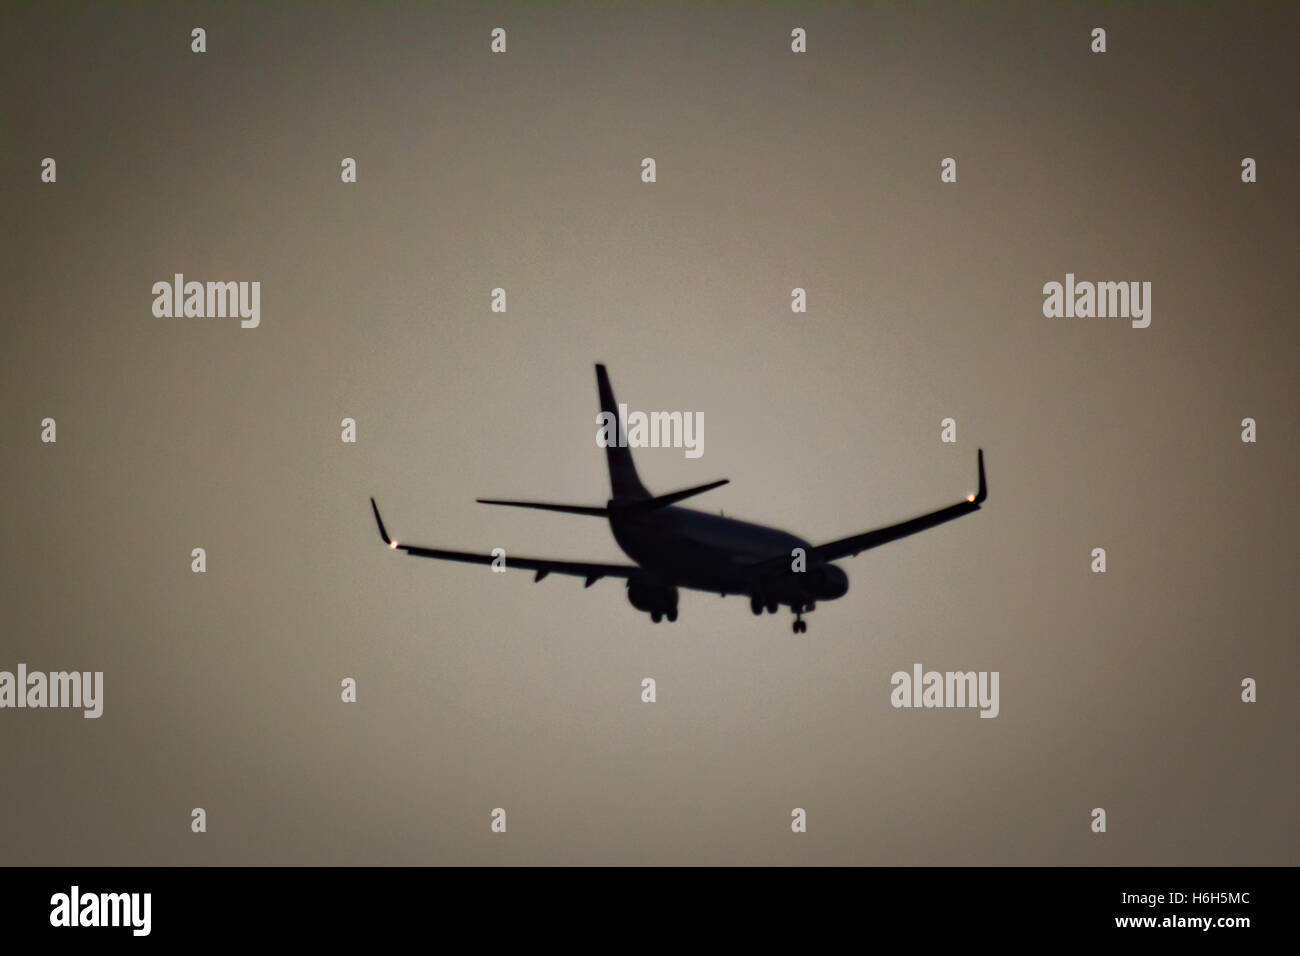 Silhouetted Jet In Flight - Stock Image